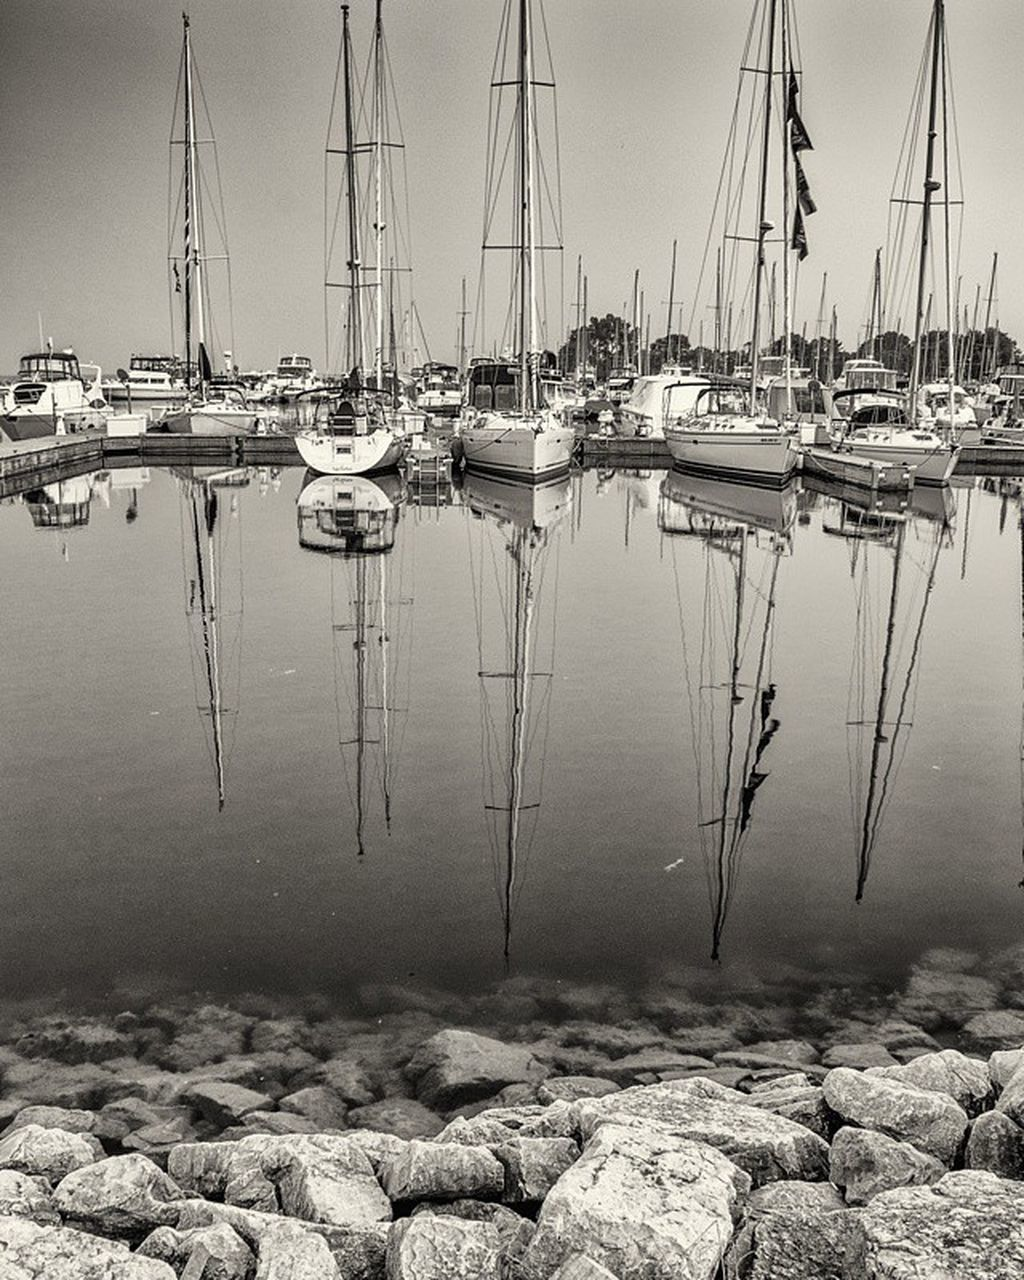 moored, reflection, nautical vessel, outdoors, water, harbor, no people, mode of transport, day, mast, transportation, large group of objects, nature, travel destinations, sailboat, architecture, sky, yacht